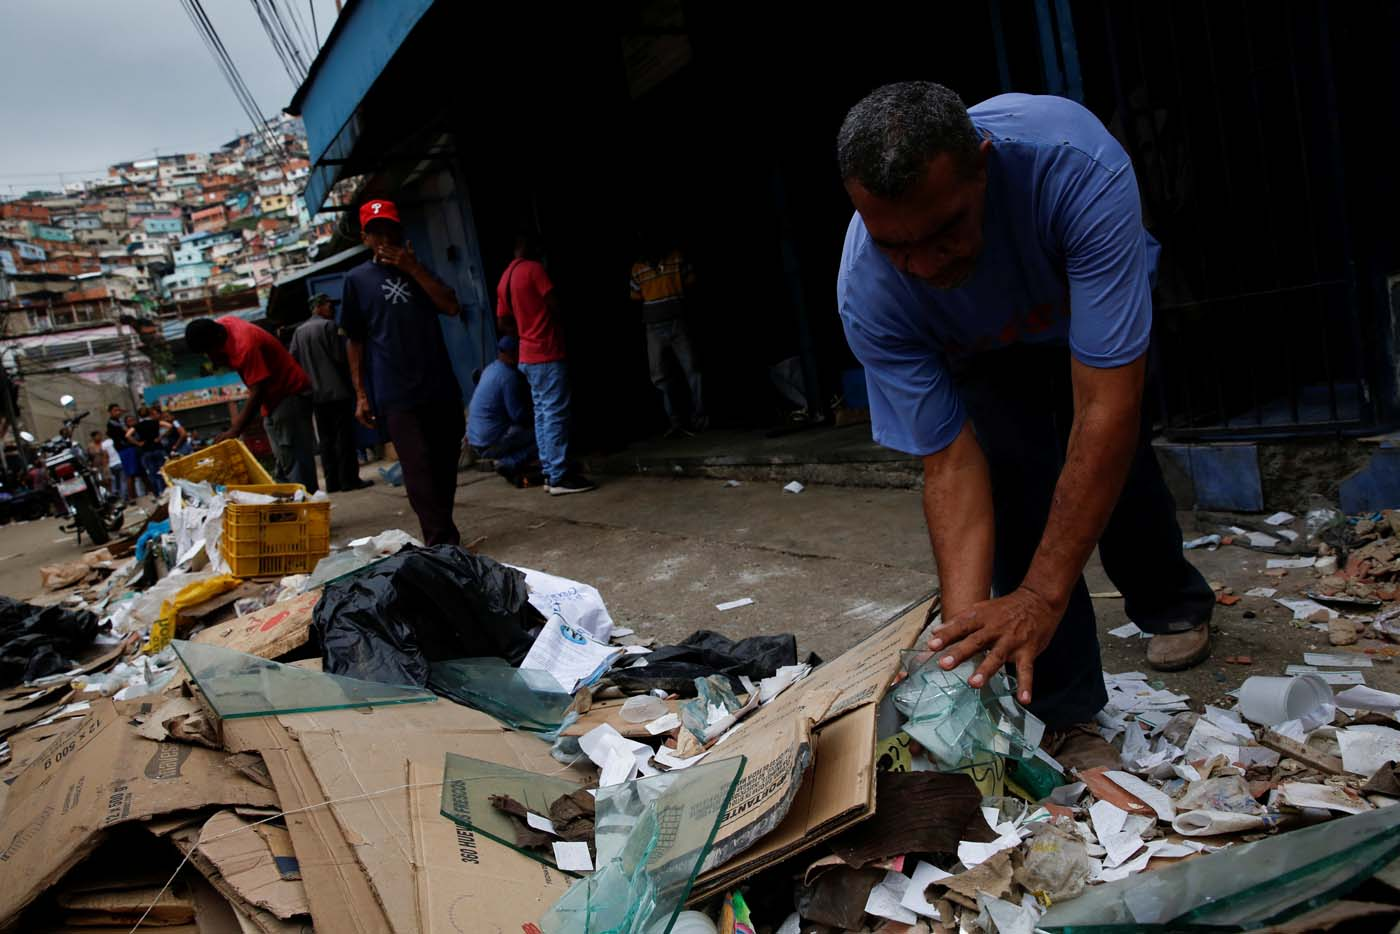 A man discards broken glass, while he tries to cleans his stall at a commercial street, after it was looted in Caracas, Venezuela April 21, 2017. REUTERS/Carlos Garcia Rawlins